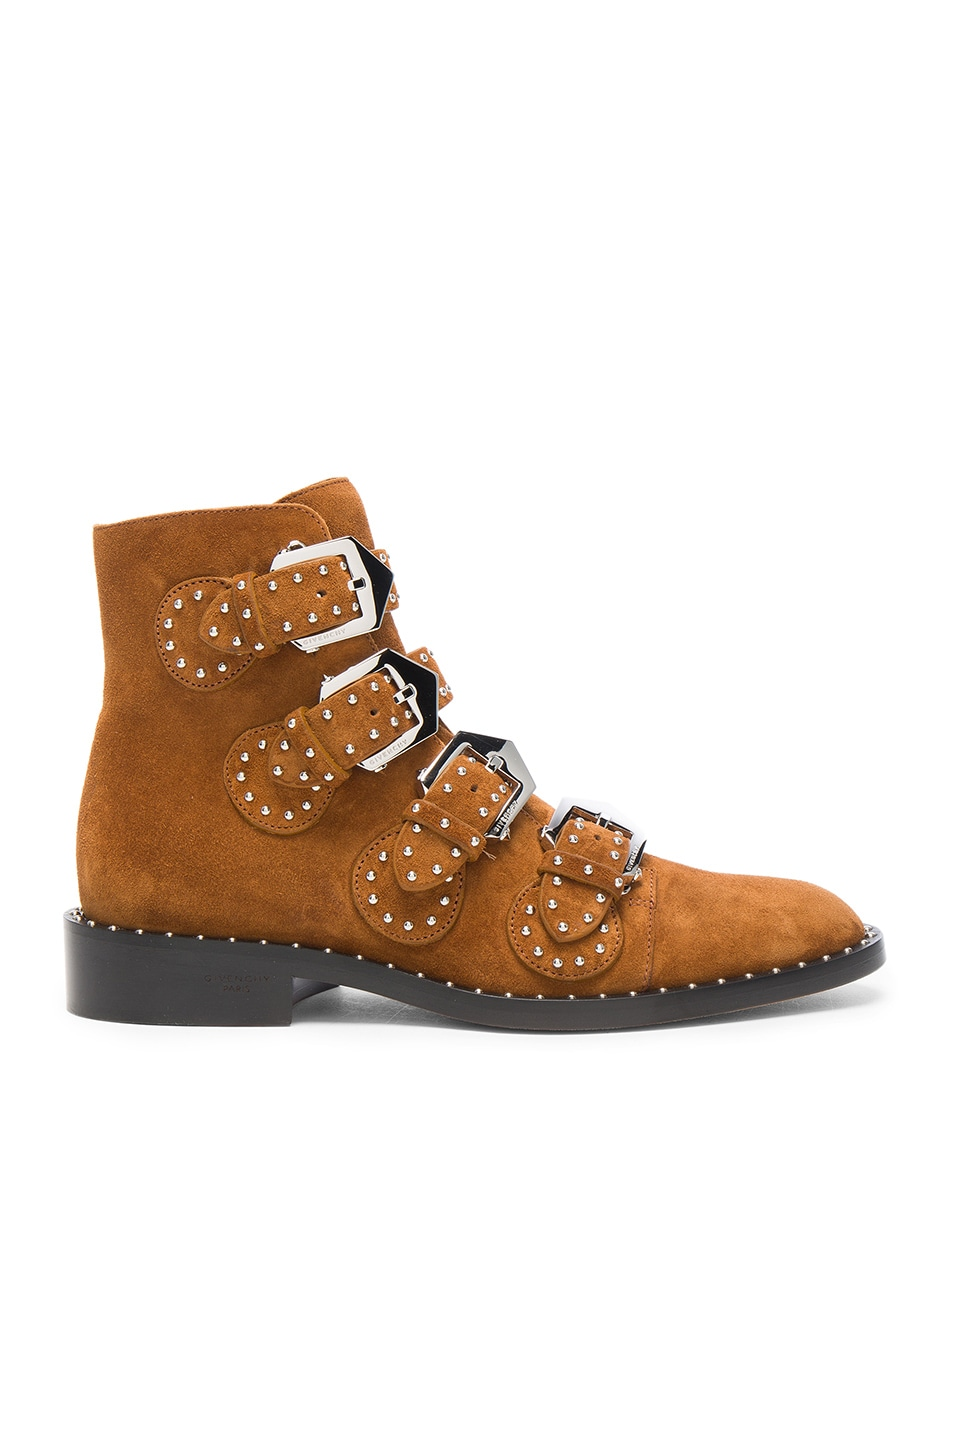 Image 1 of Givenchy Elegant Studded Suede Ankle Boots in Caramel